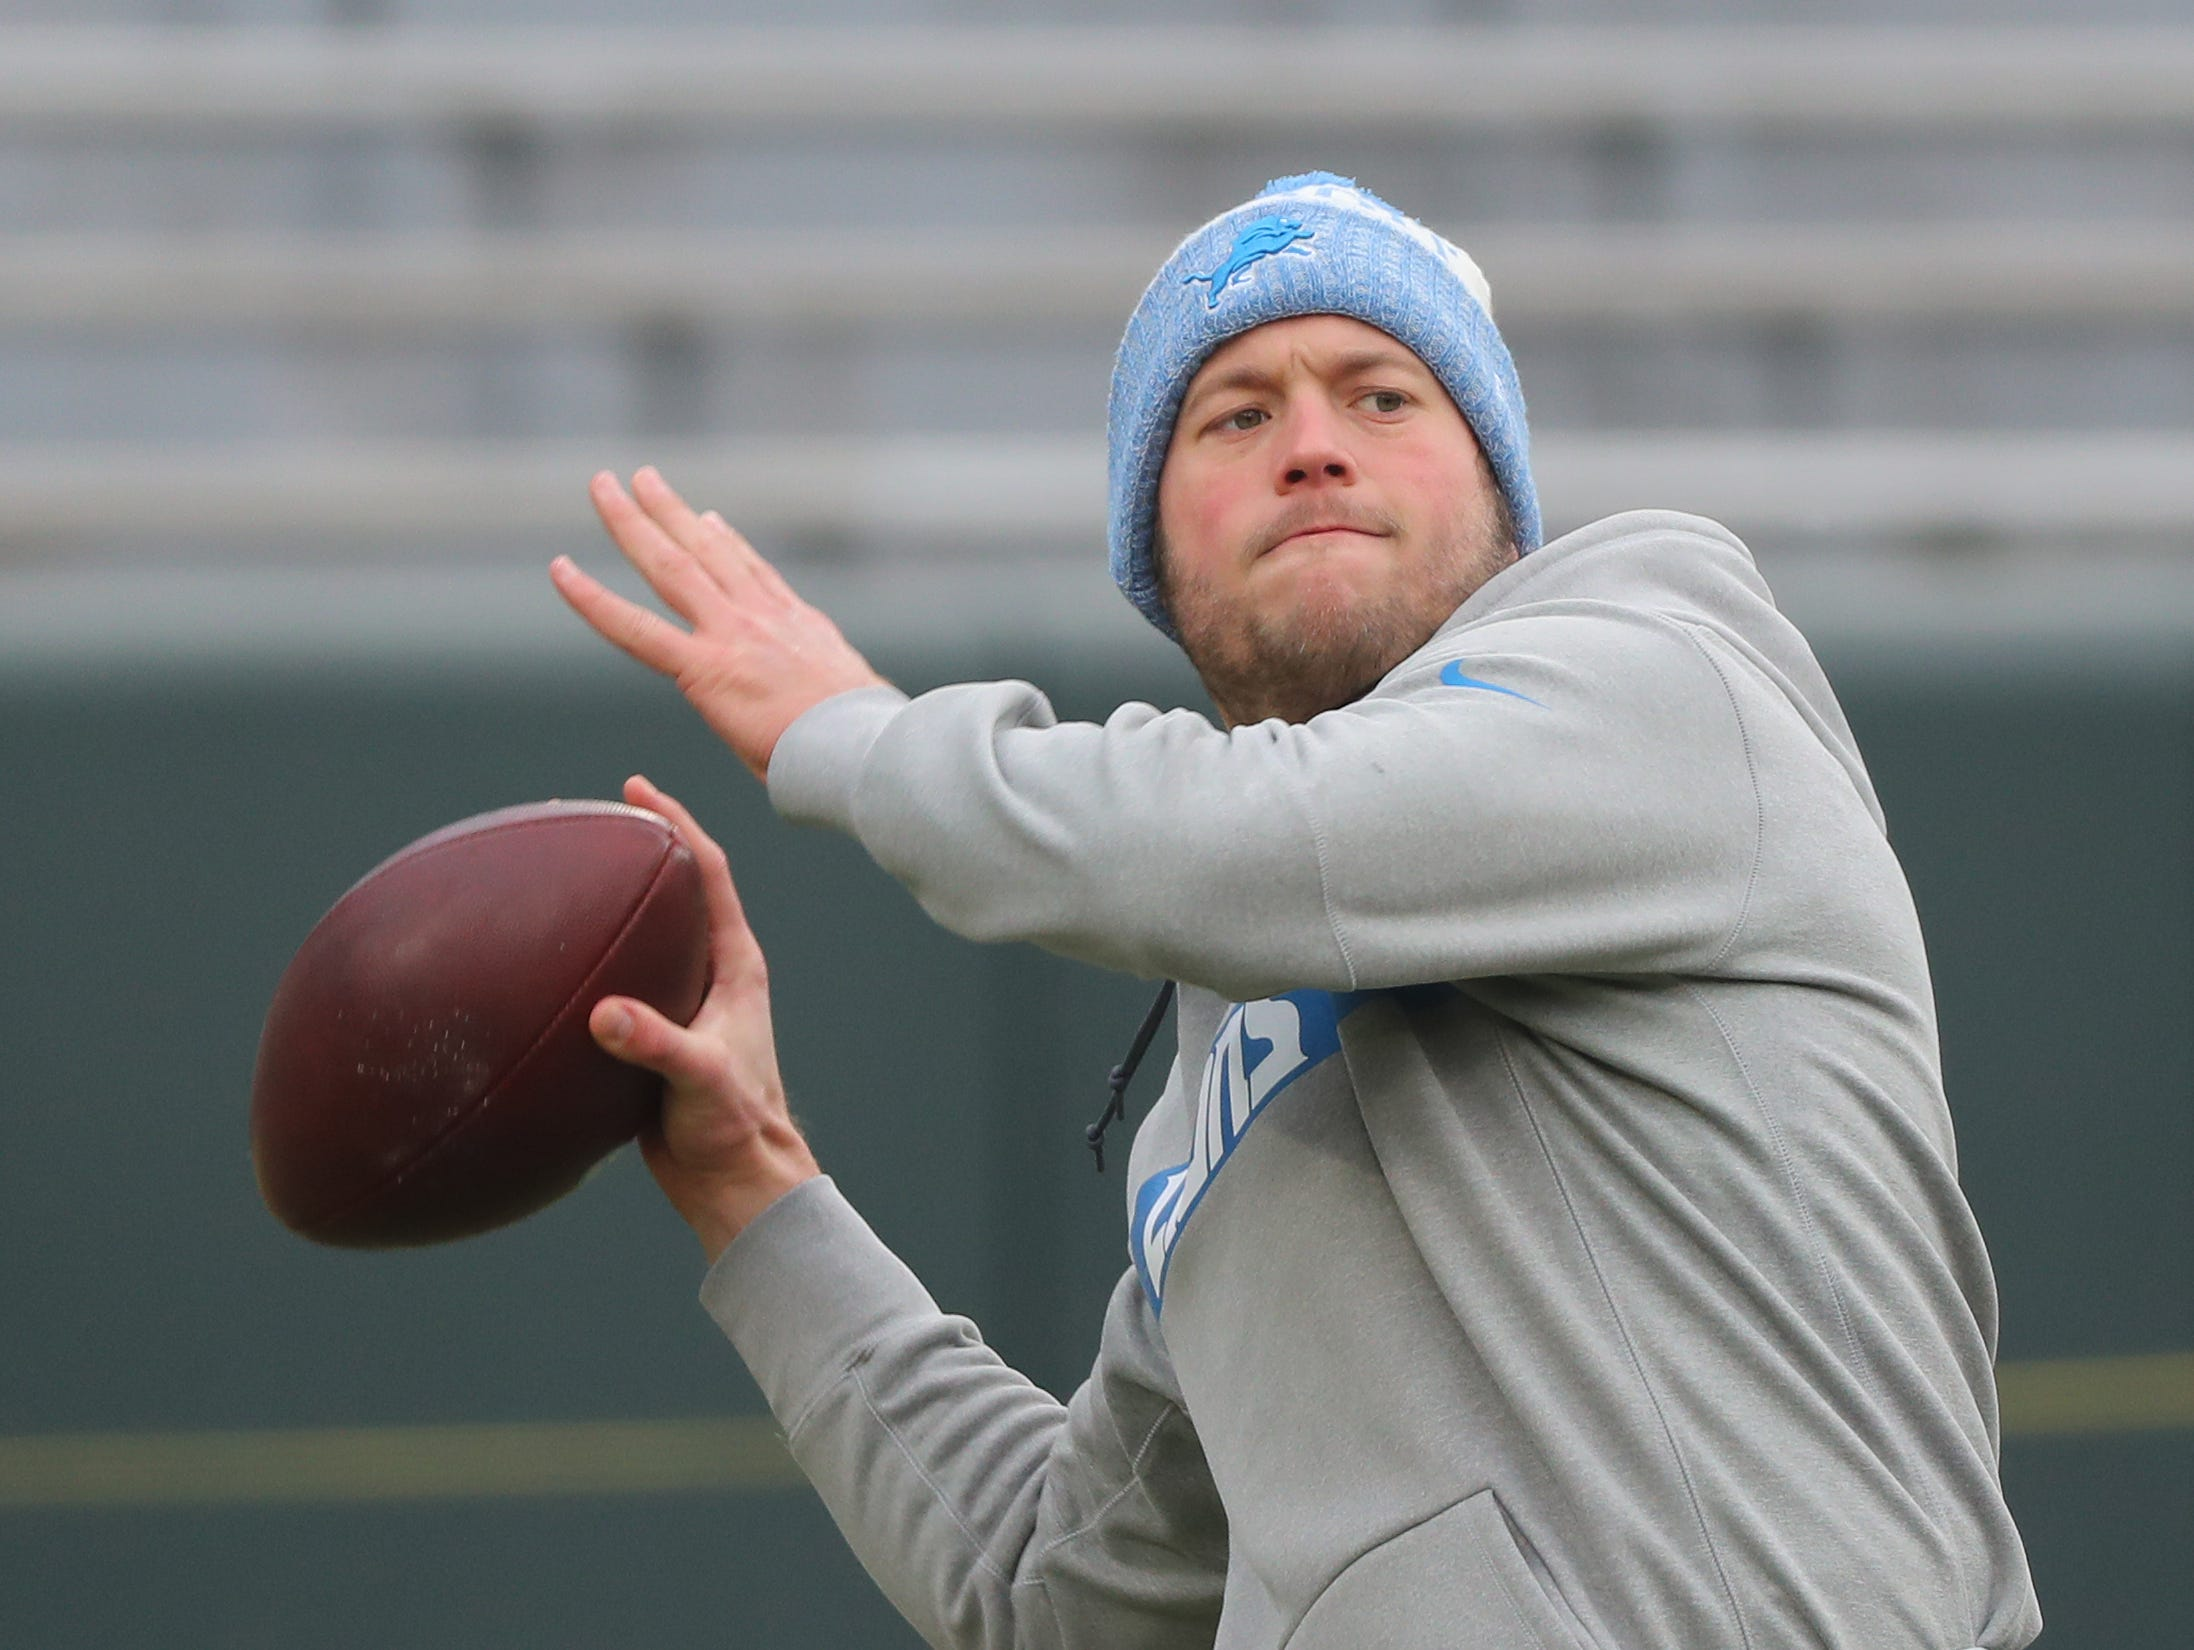 Detroit Lions quarterback Matthew Stafford (9) warms up before the game against the Packers at Lambeau Field Sunday, December 30, 2018 in Green Bay, Wis.